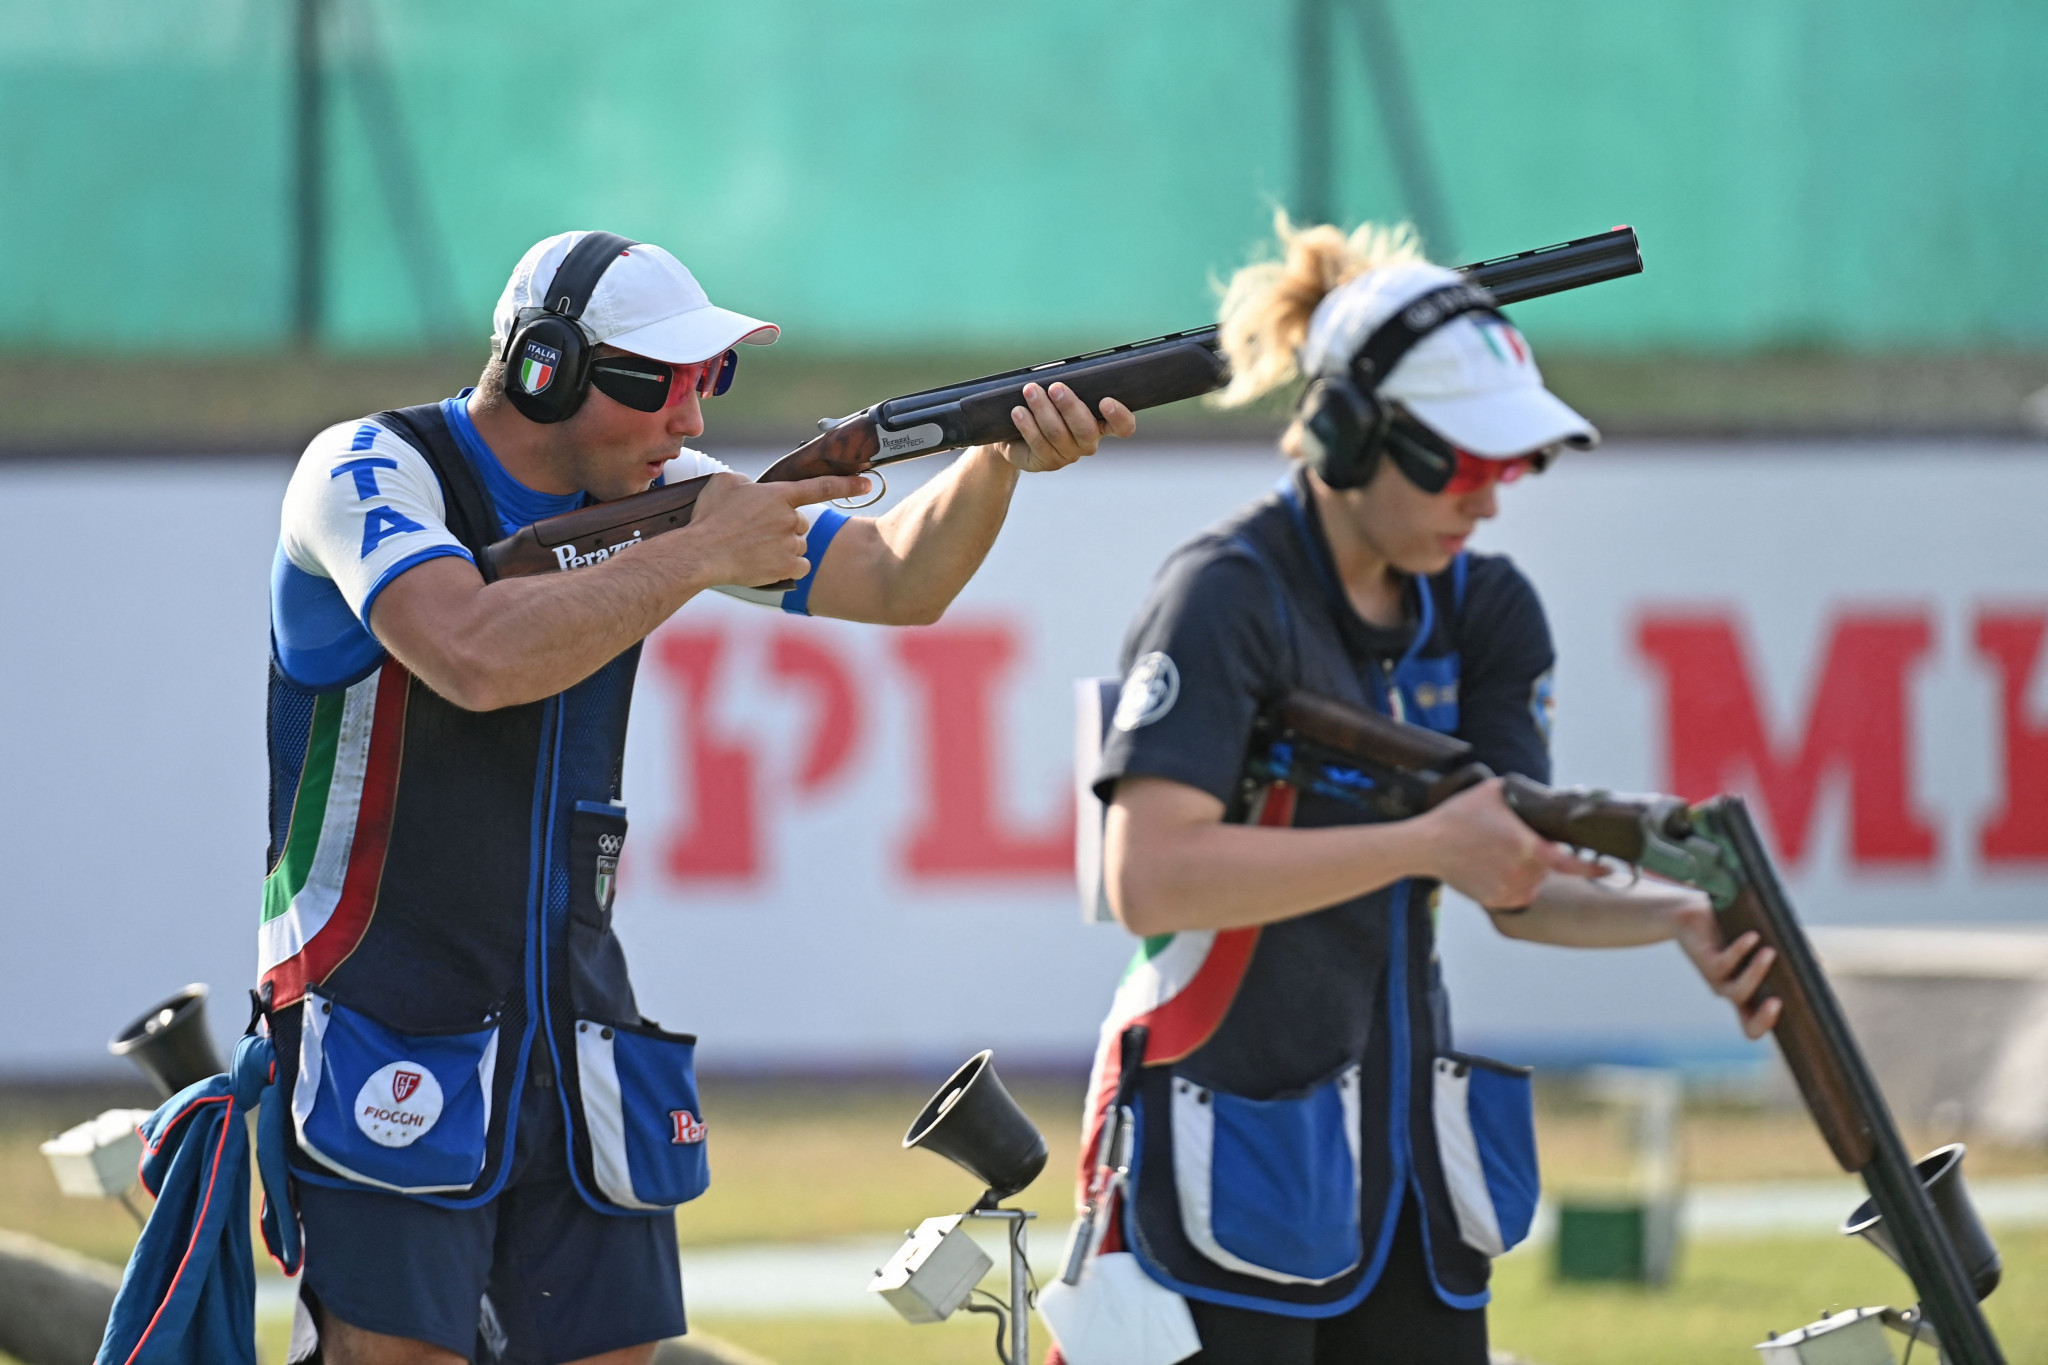 Italy win mixed team trap title at ISSF World Cup in New Delhi